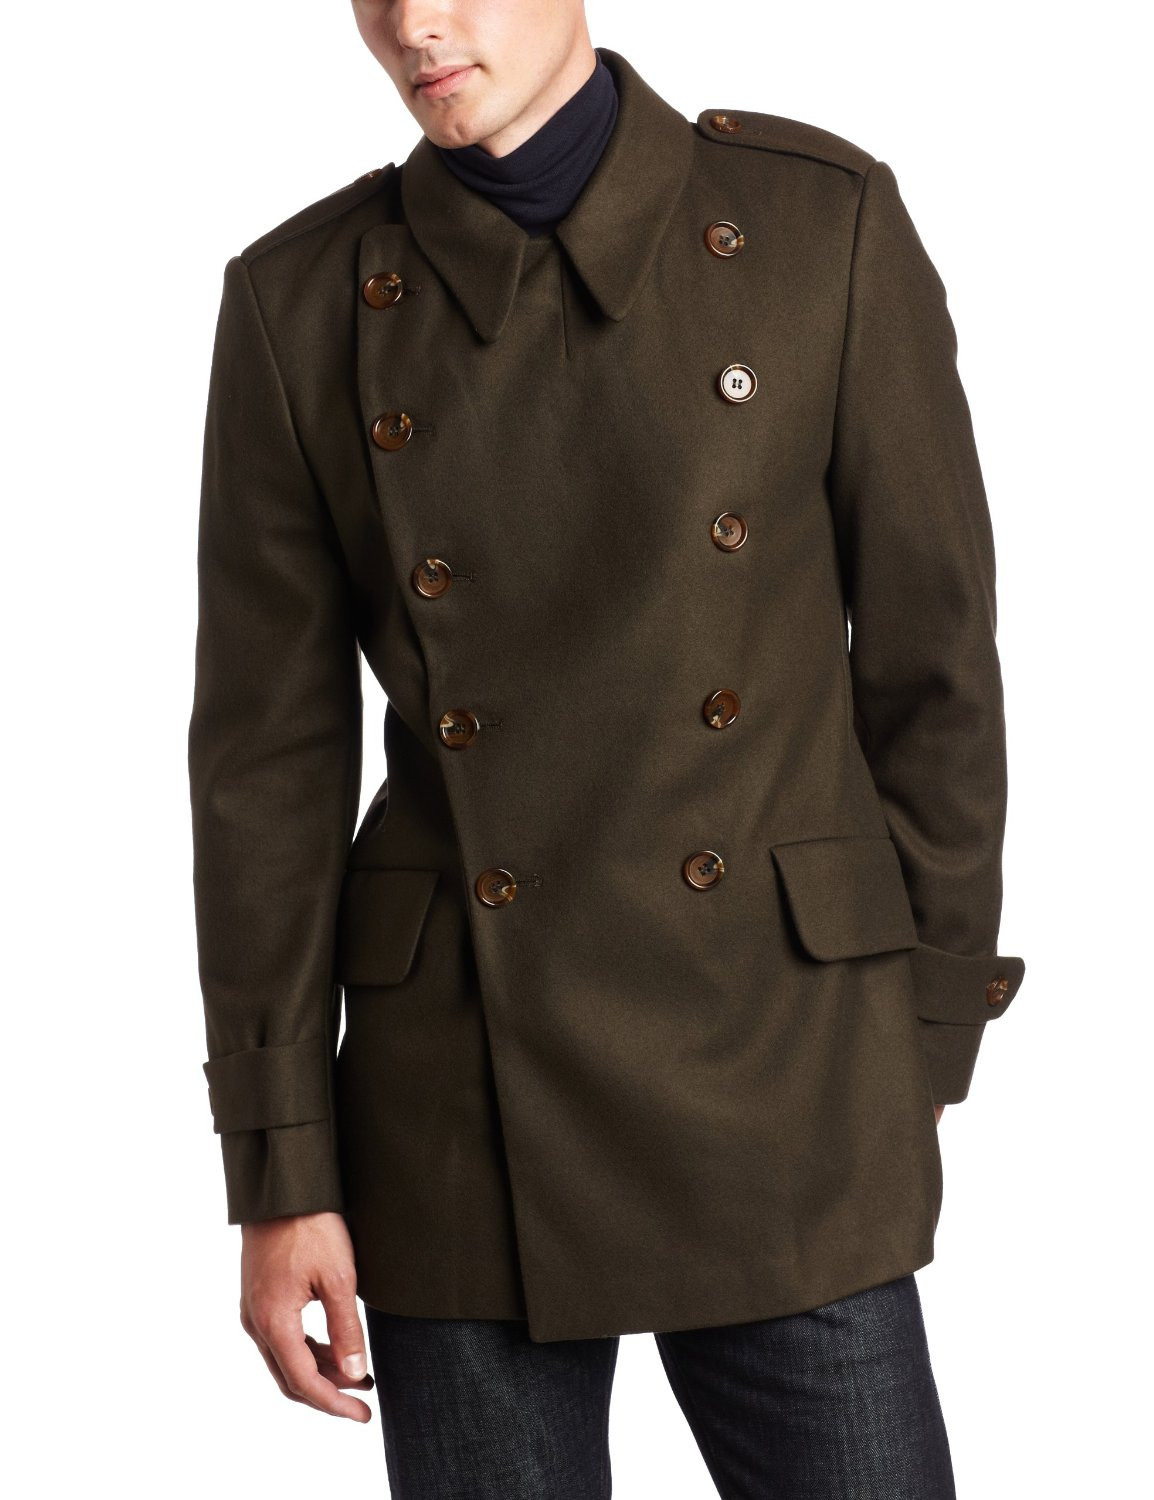 Military Coats and Jackets. Keep warm this winter with a durable military jacket. We have authentic military field jackets, flight jackets, parkas and more - just like the real thing!